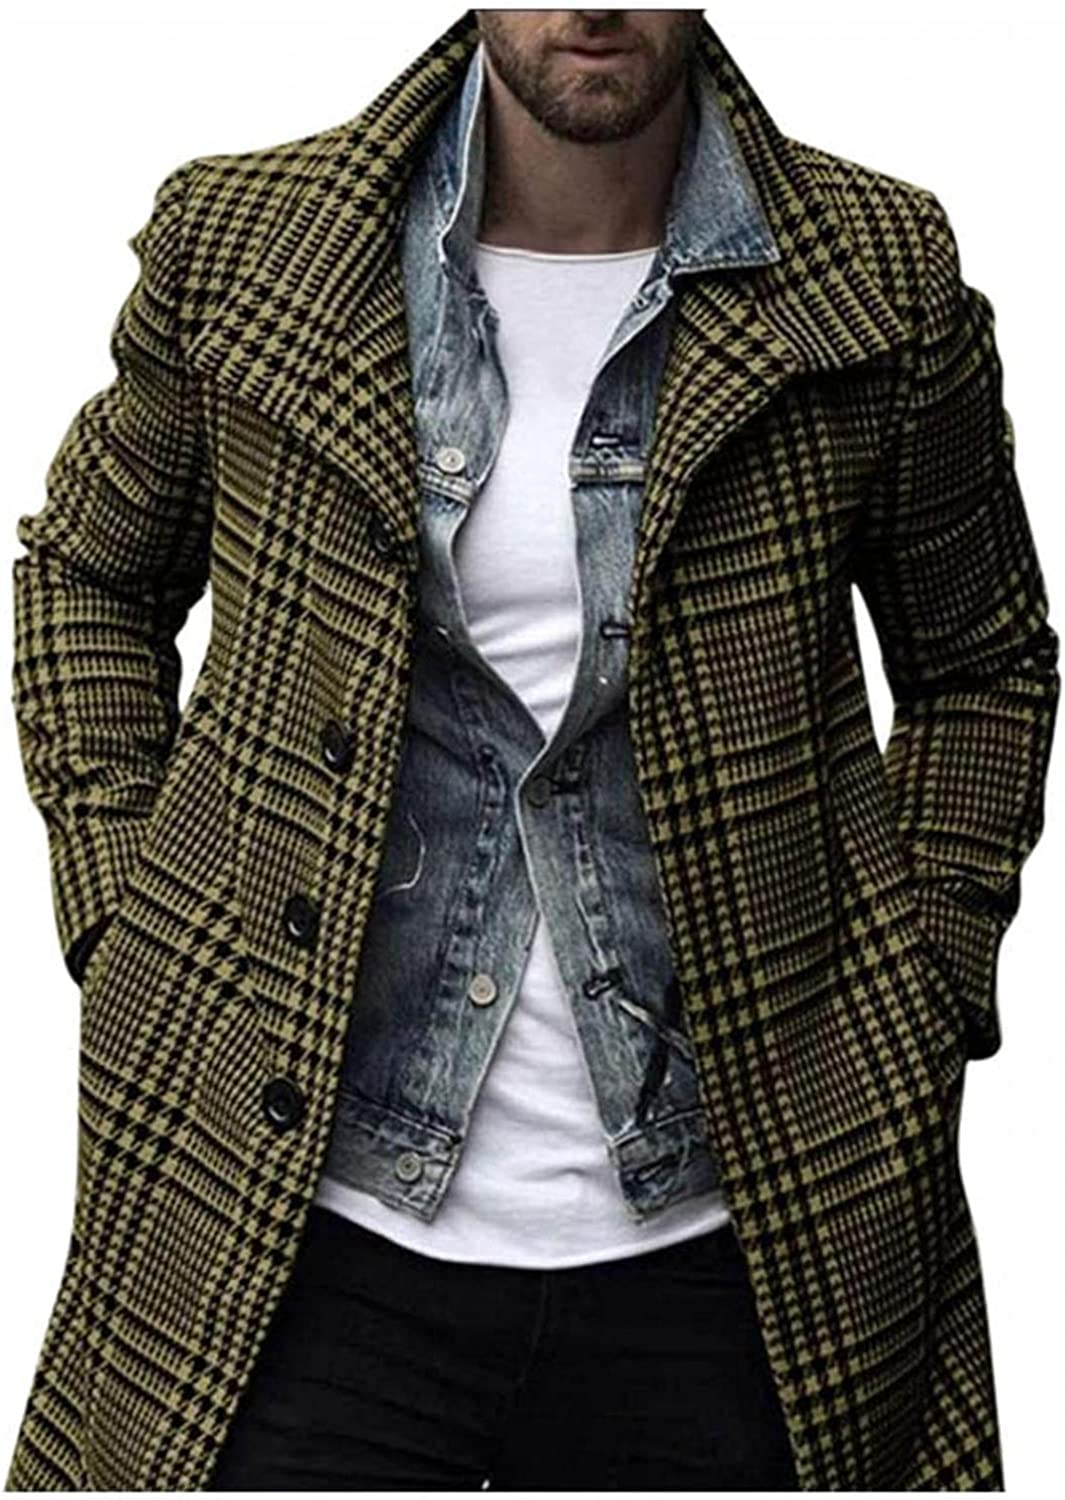 Huangse Men's Casual Notch Lapel Single Breasted Plaid Mid Long Trench Pea Coat Autumn Jacket Coat for Men